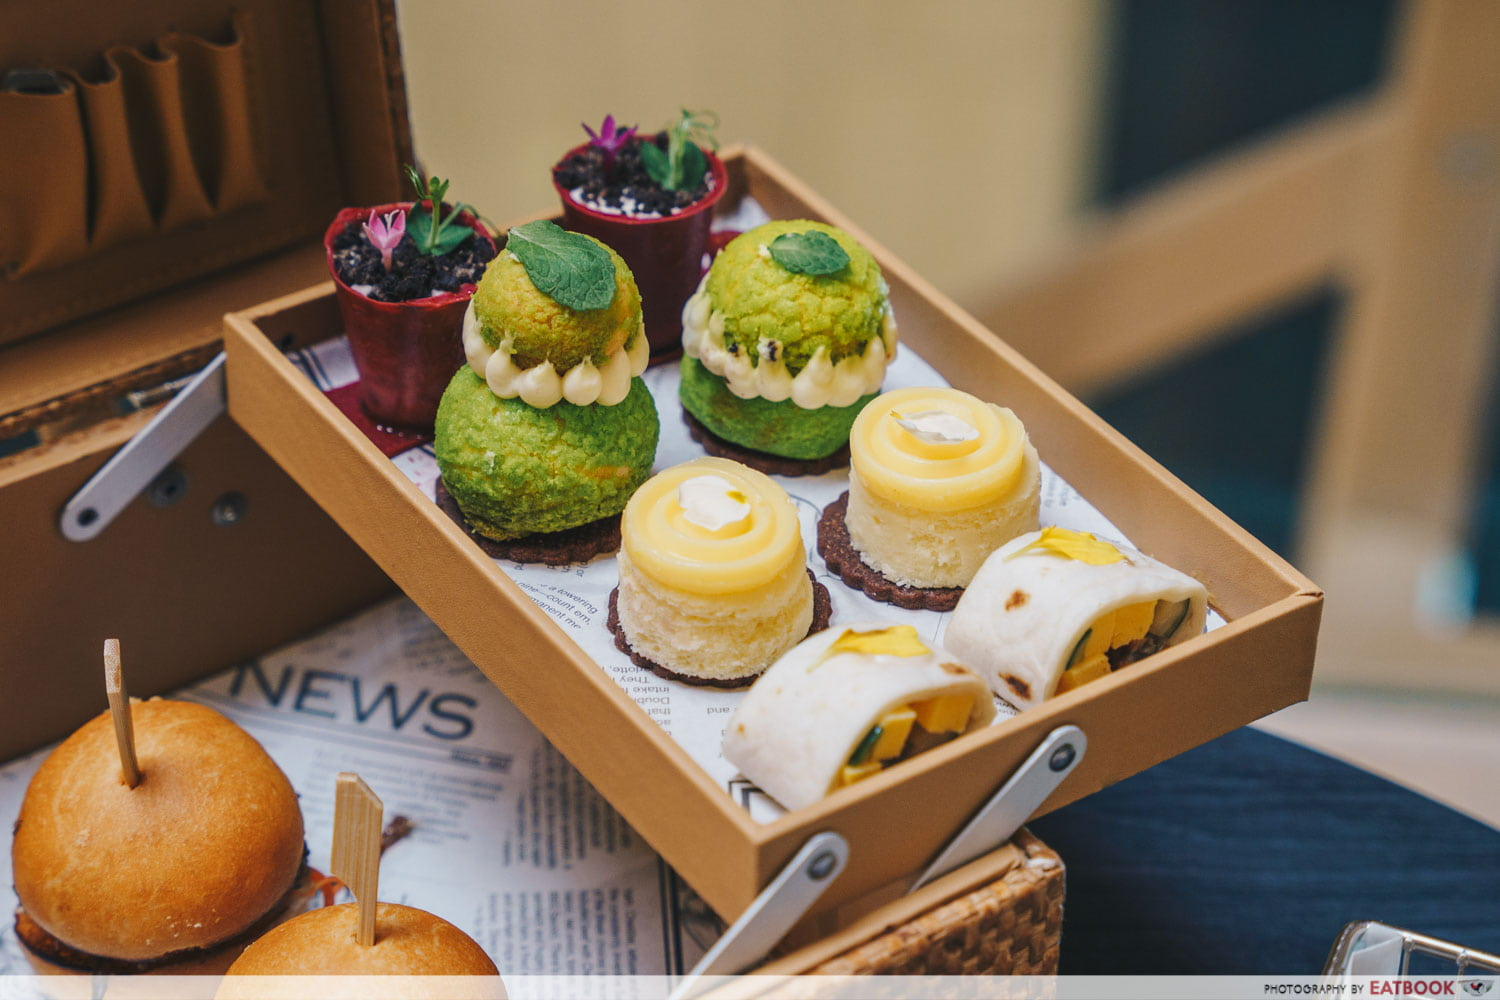 Peppermint Passionfruit Choux Puff